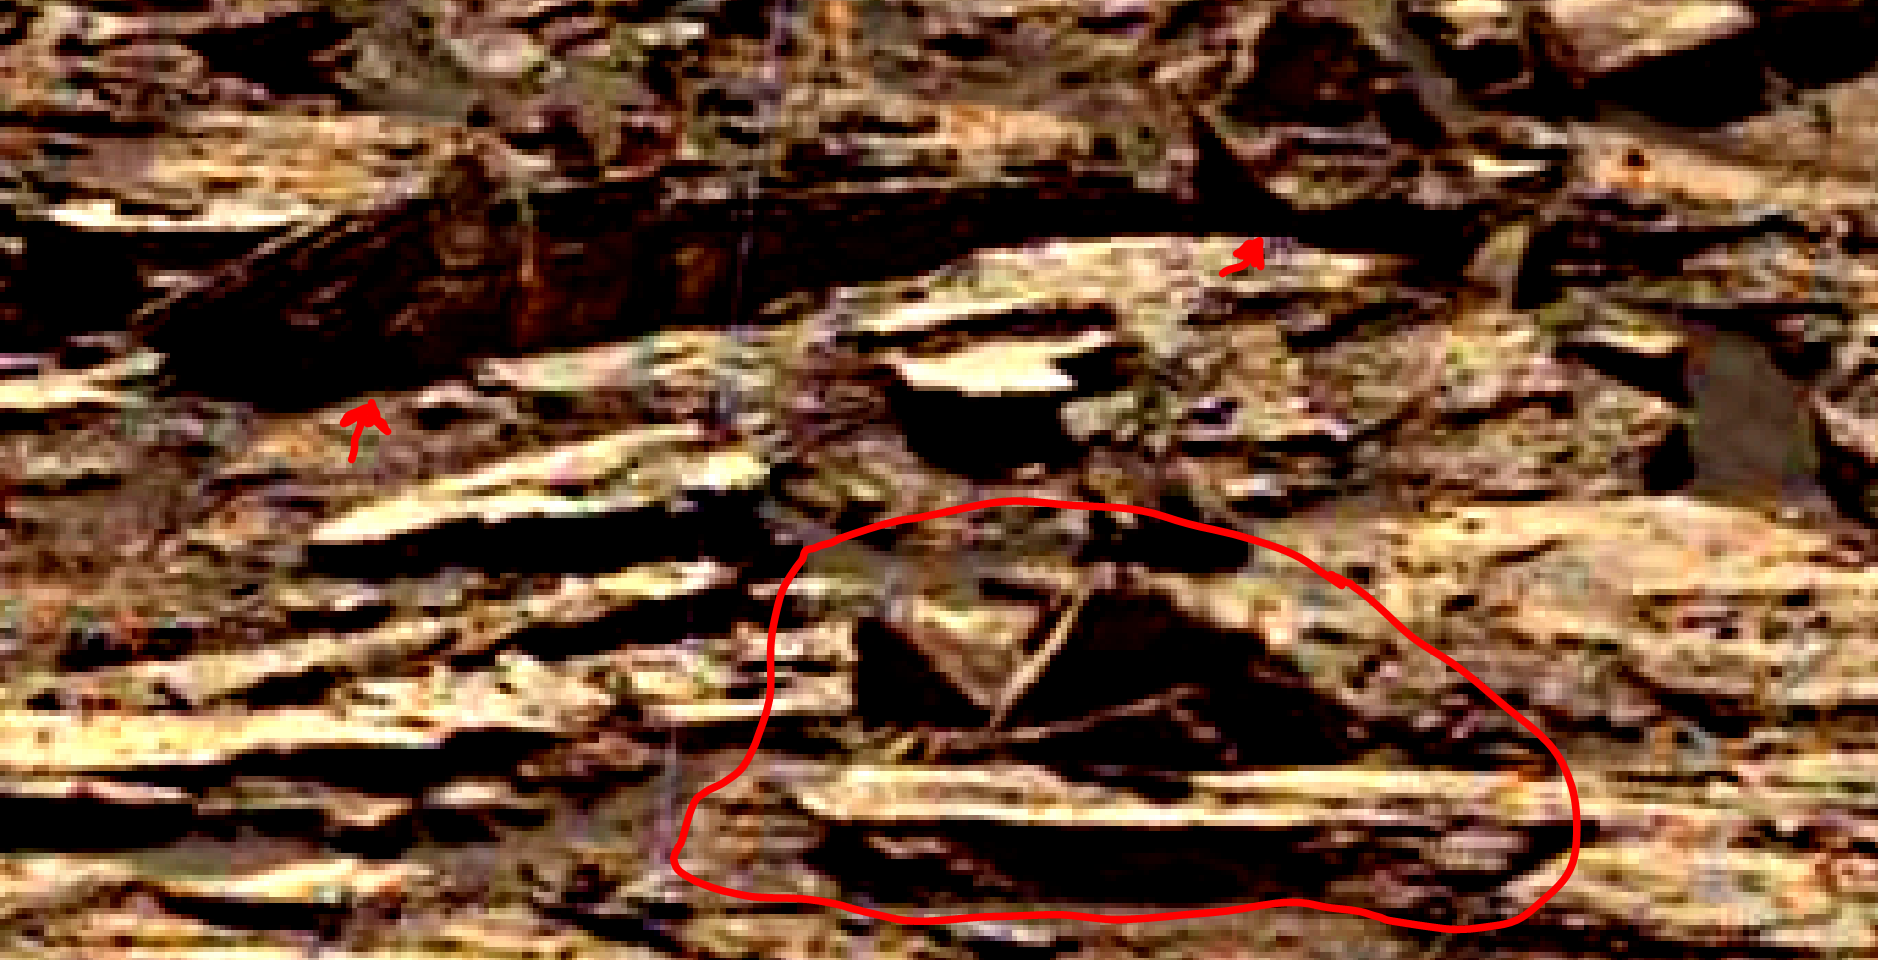 mars-sol-1489-anomaly-artifacts-7-was-life-on-mars